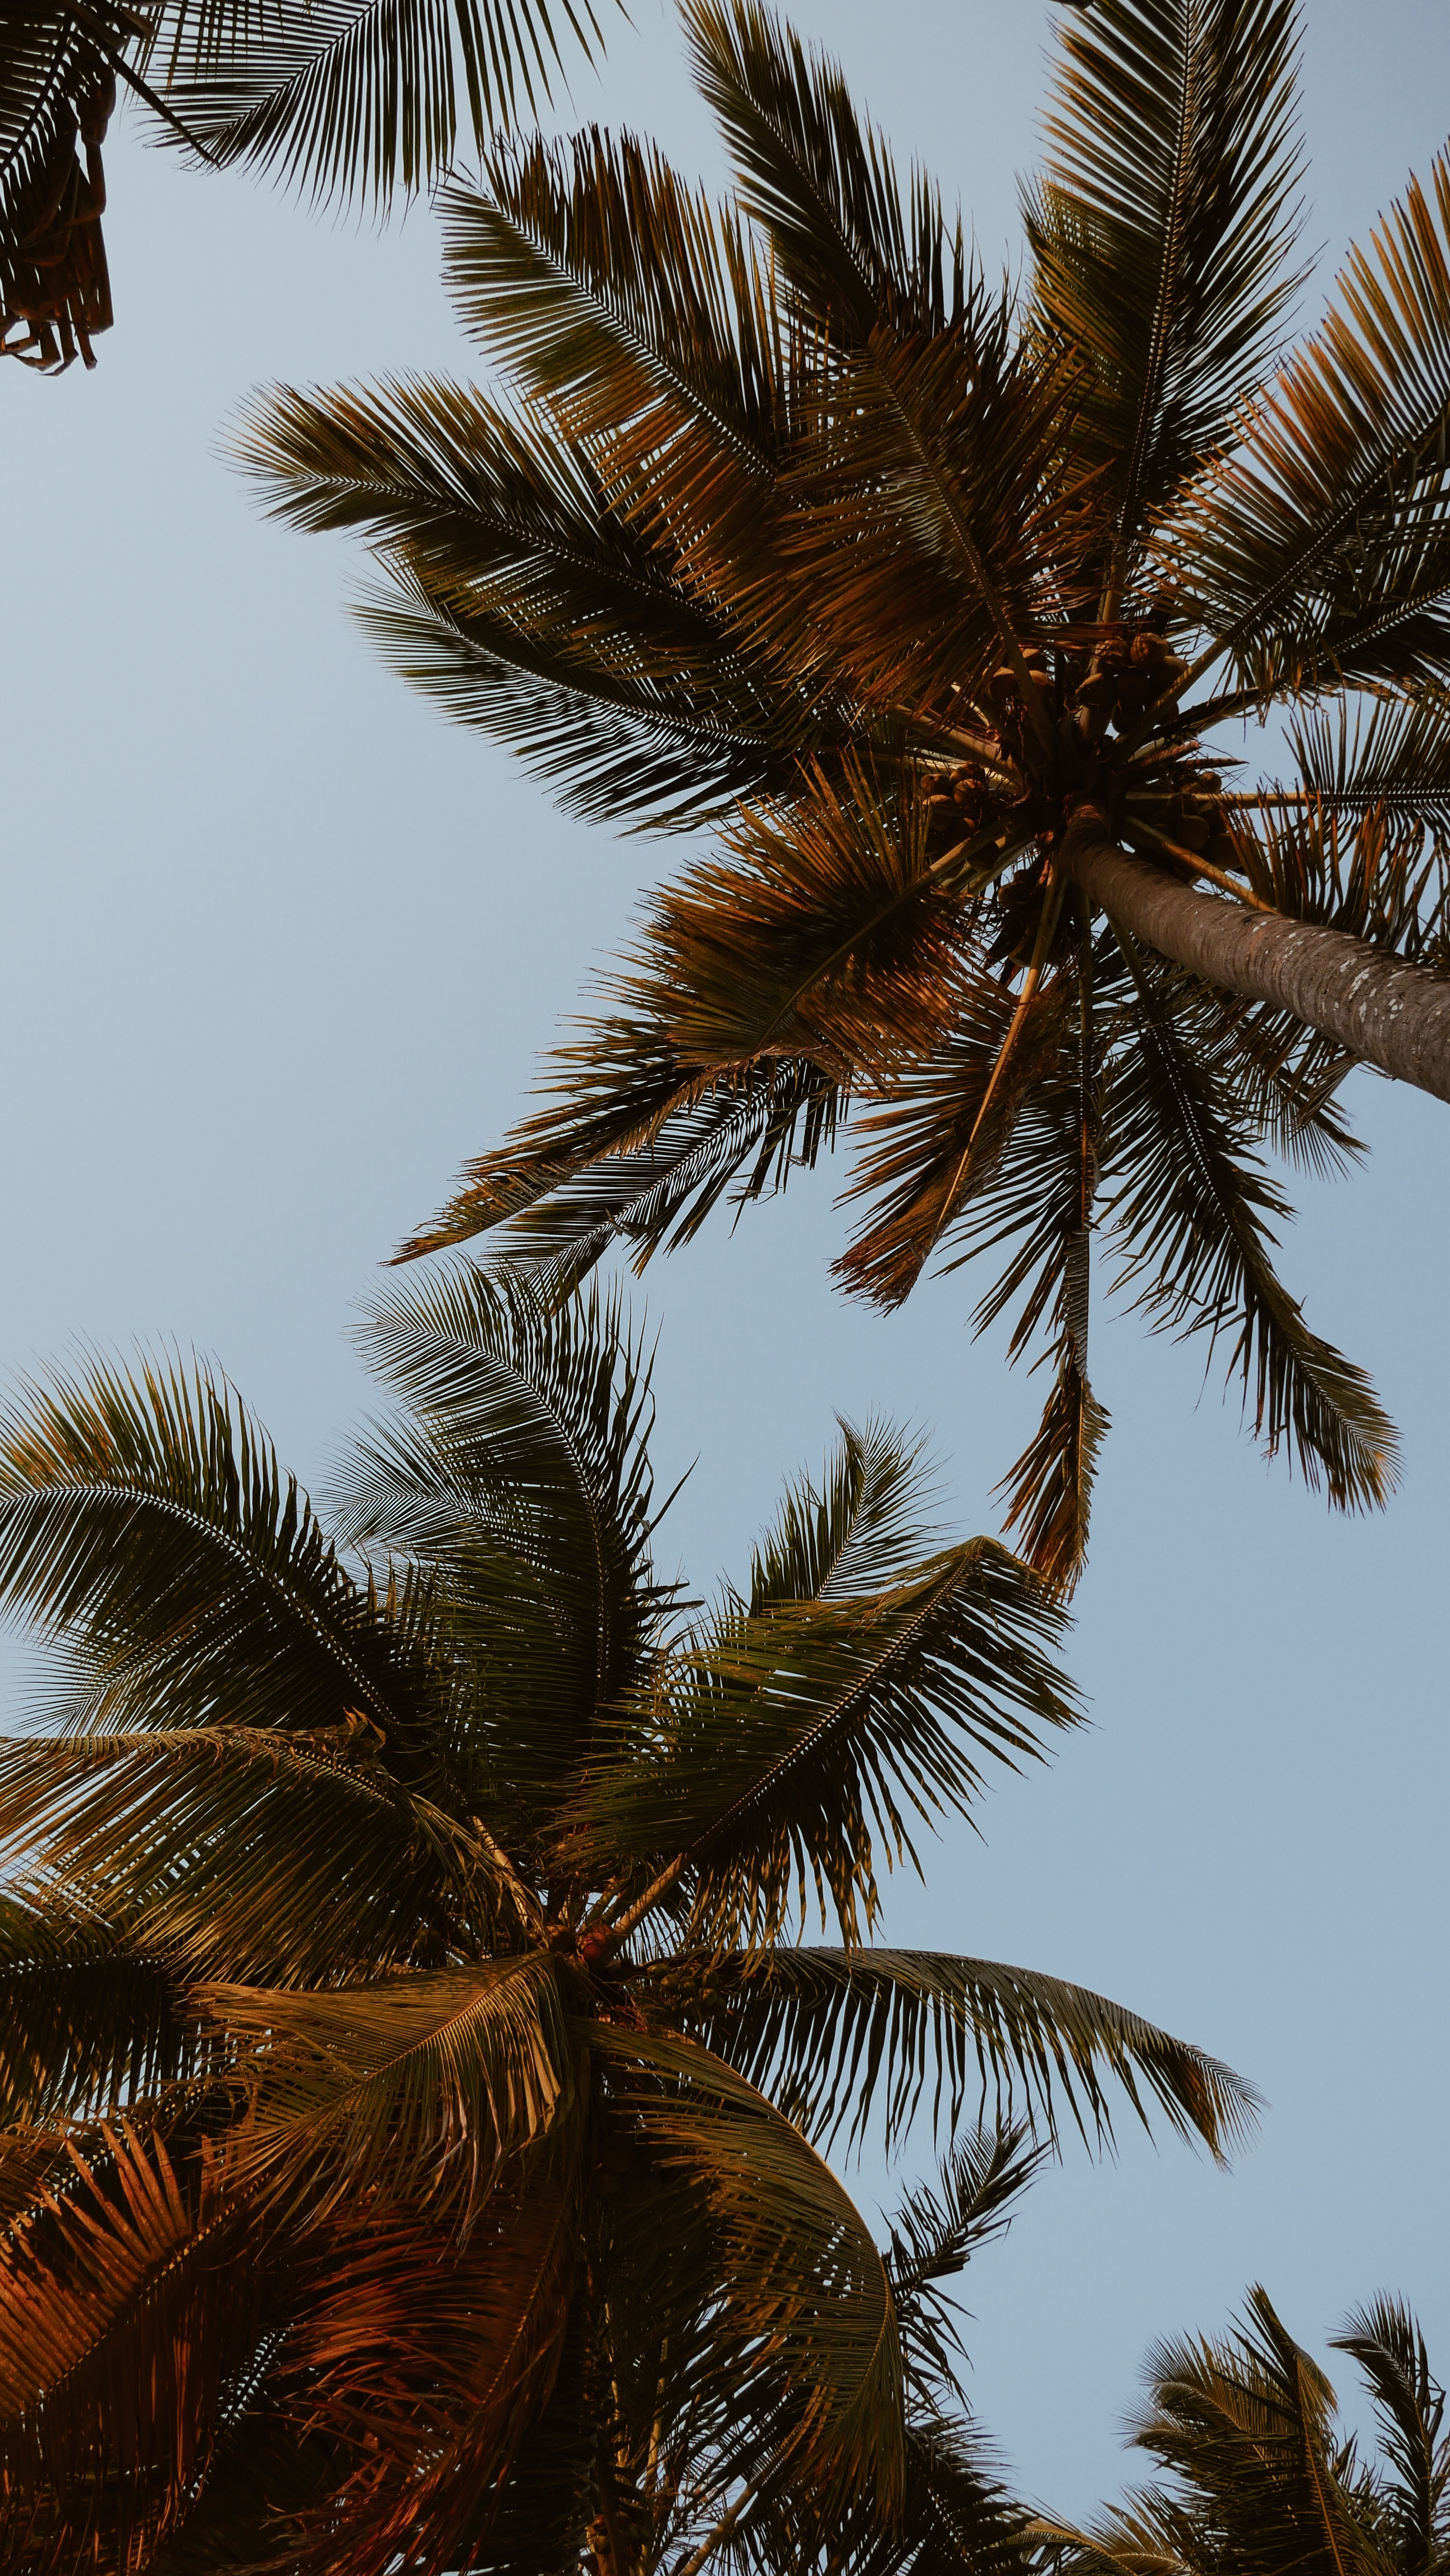 111239 download wallpaper Nature, Crowns, Crown, Branches, Leaves, Sky, Tropics, Palms screensavers and pictures for free